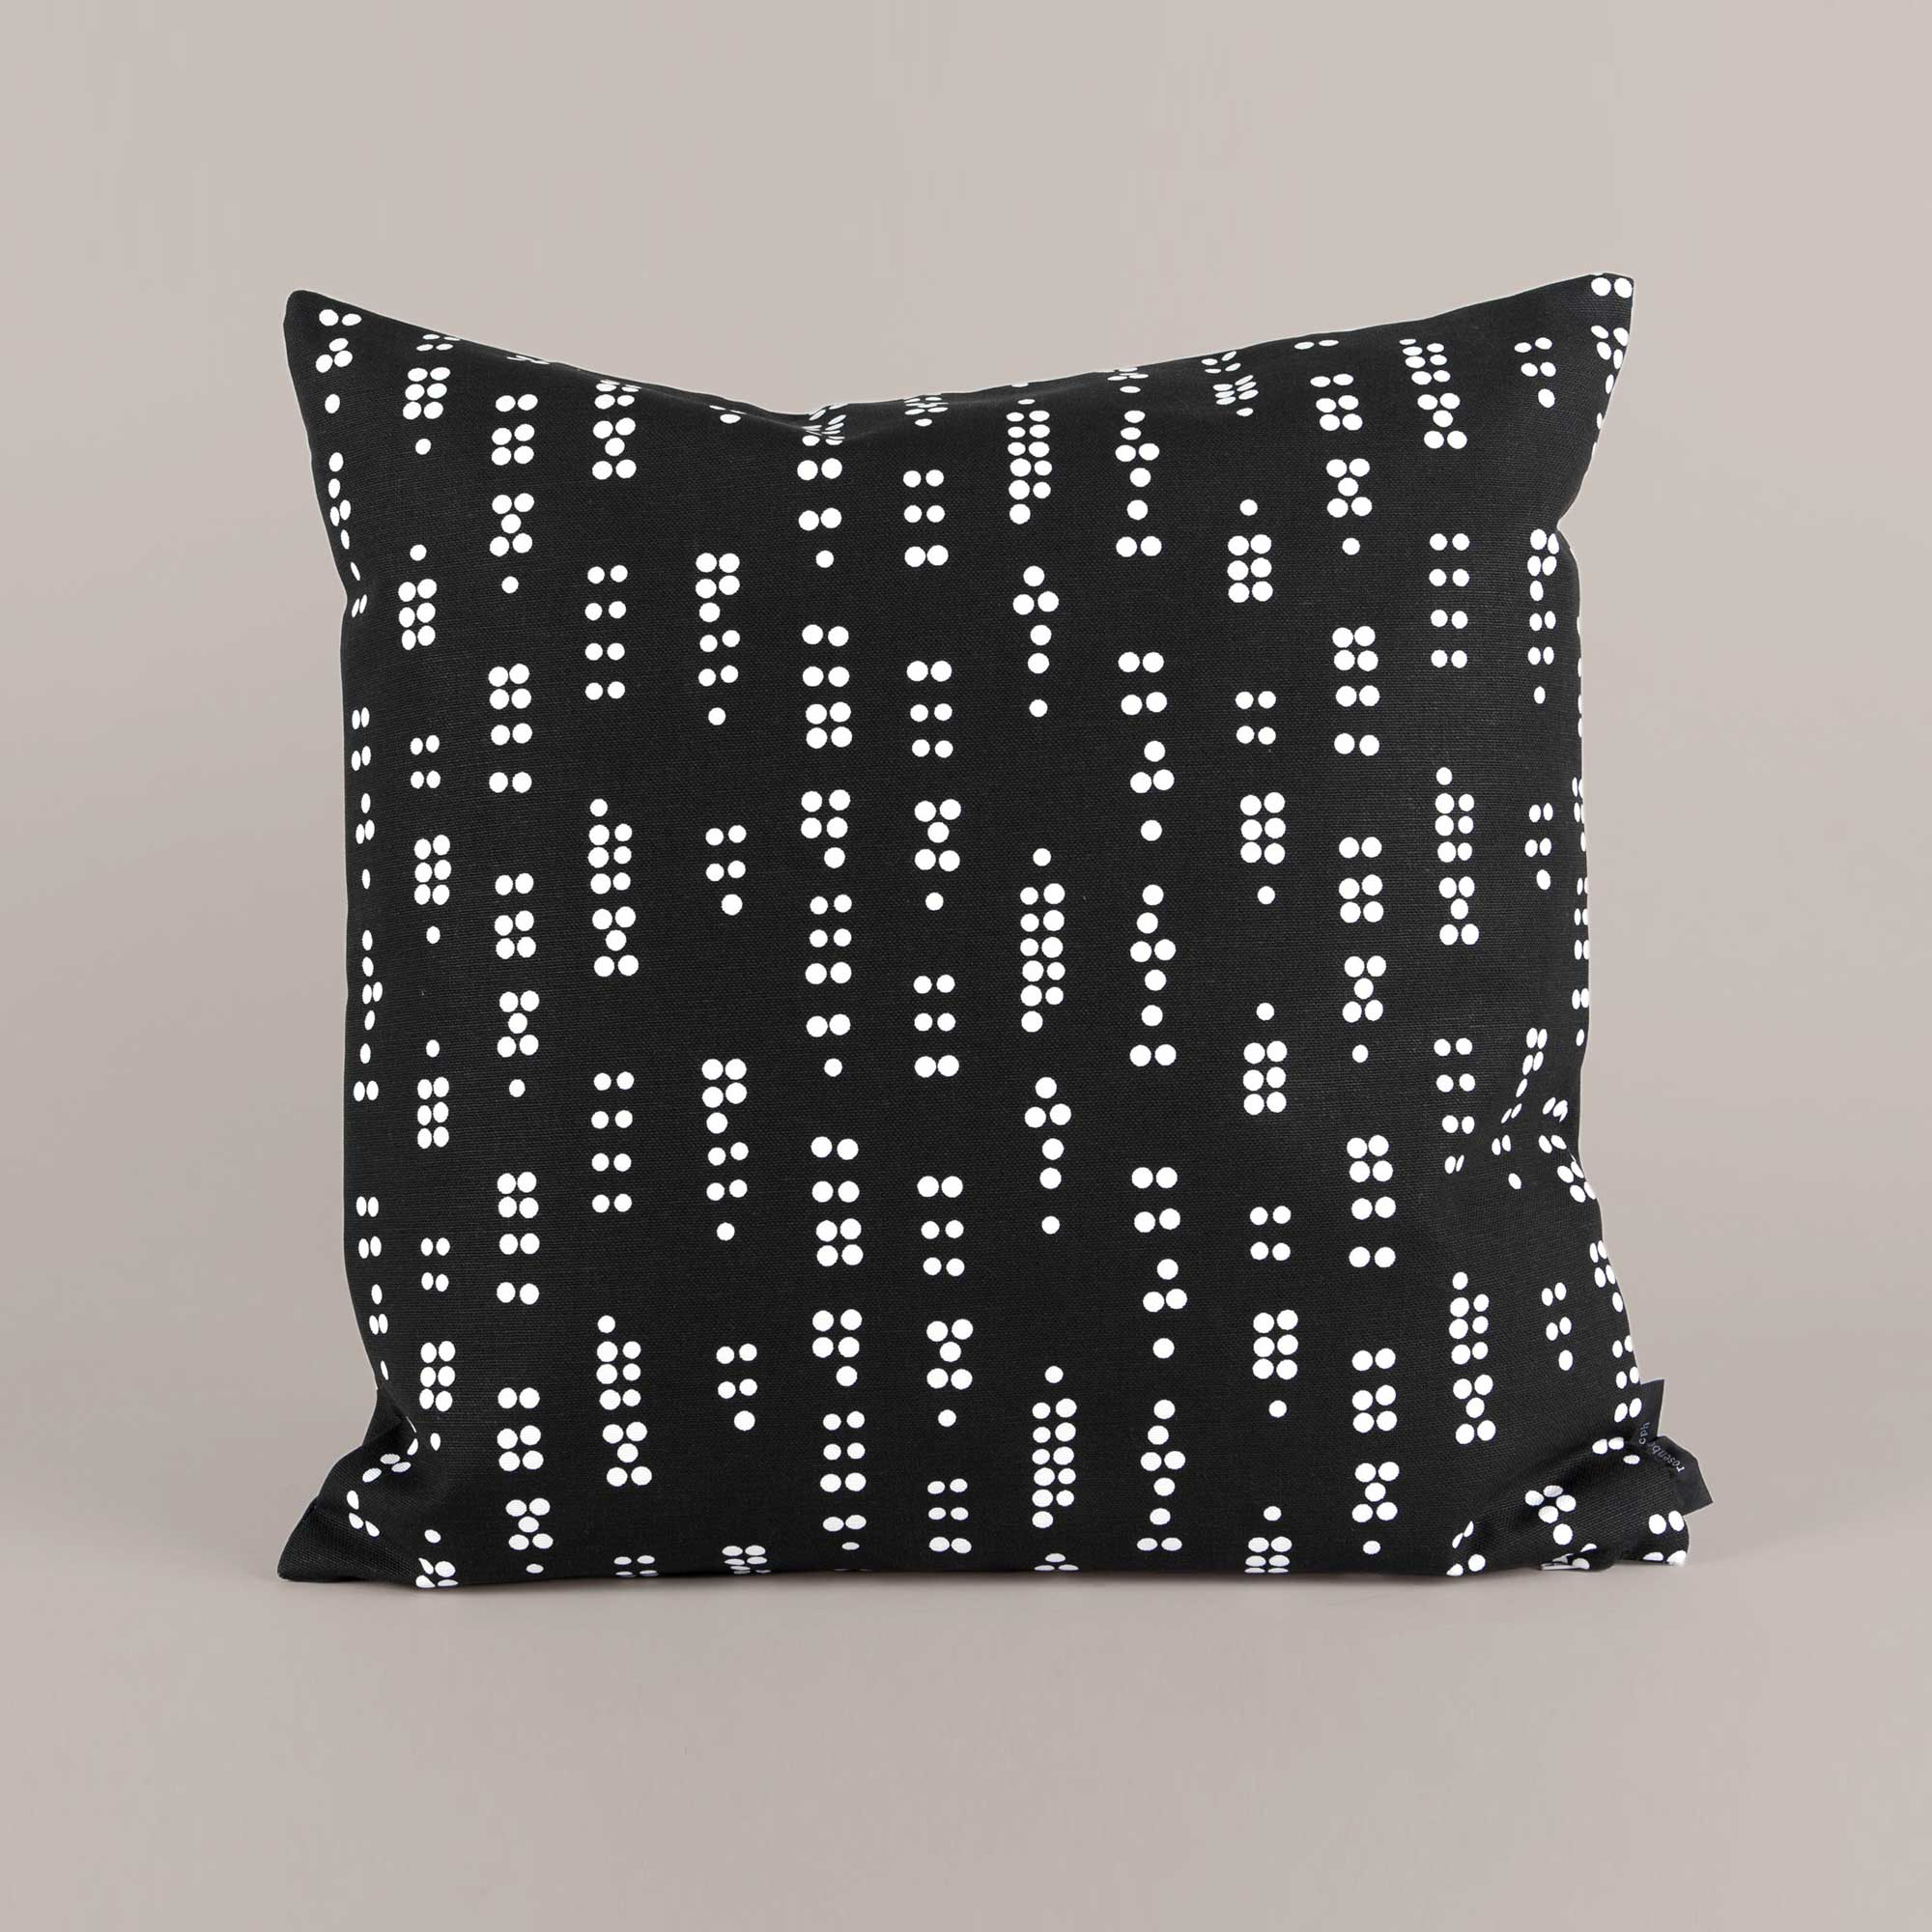 Square canvas cushion, Dot black, Design by Anne Rosenberg, RosenbergCph